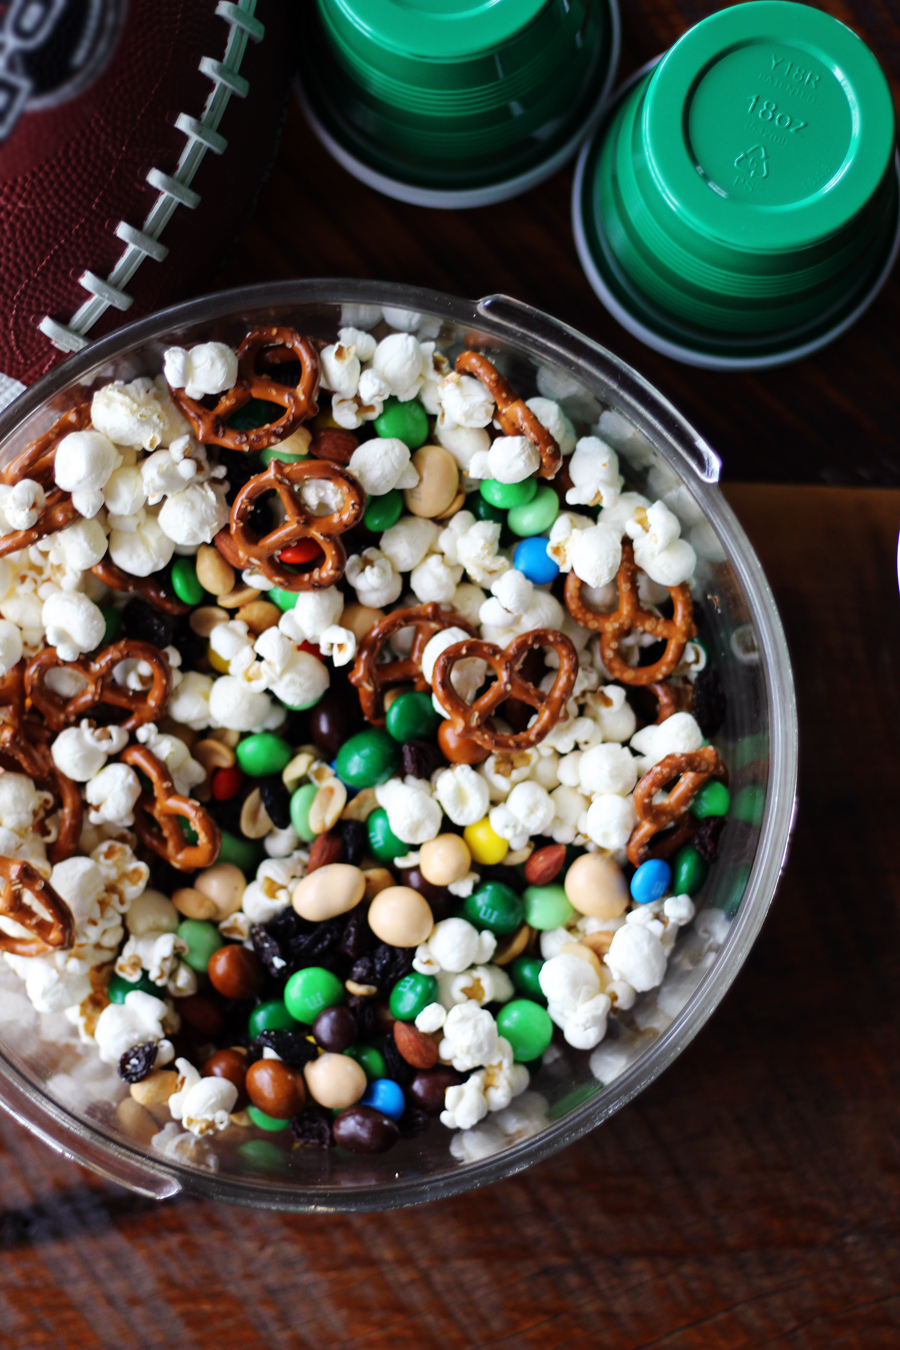 A snack mix of popcorn, chocolate candies, pretzels and more